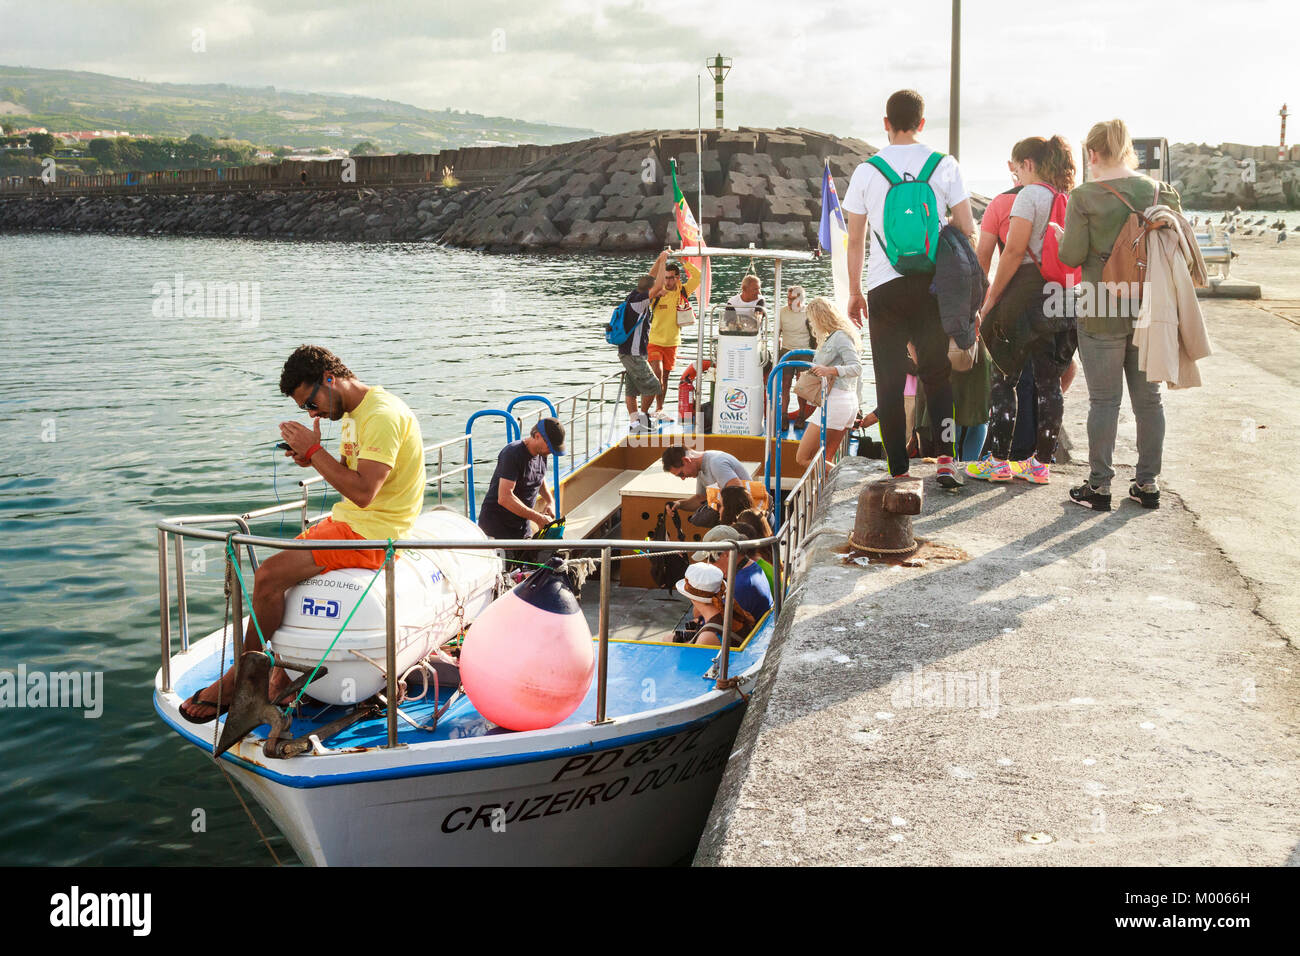 Tourists boarding a boat to travel to islet of Vila franca do Campo from Sao Miguel, Azores, Portugal - Stock Image